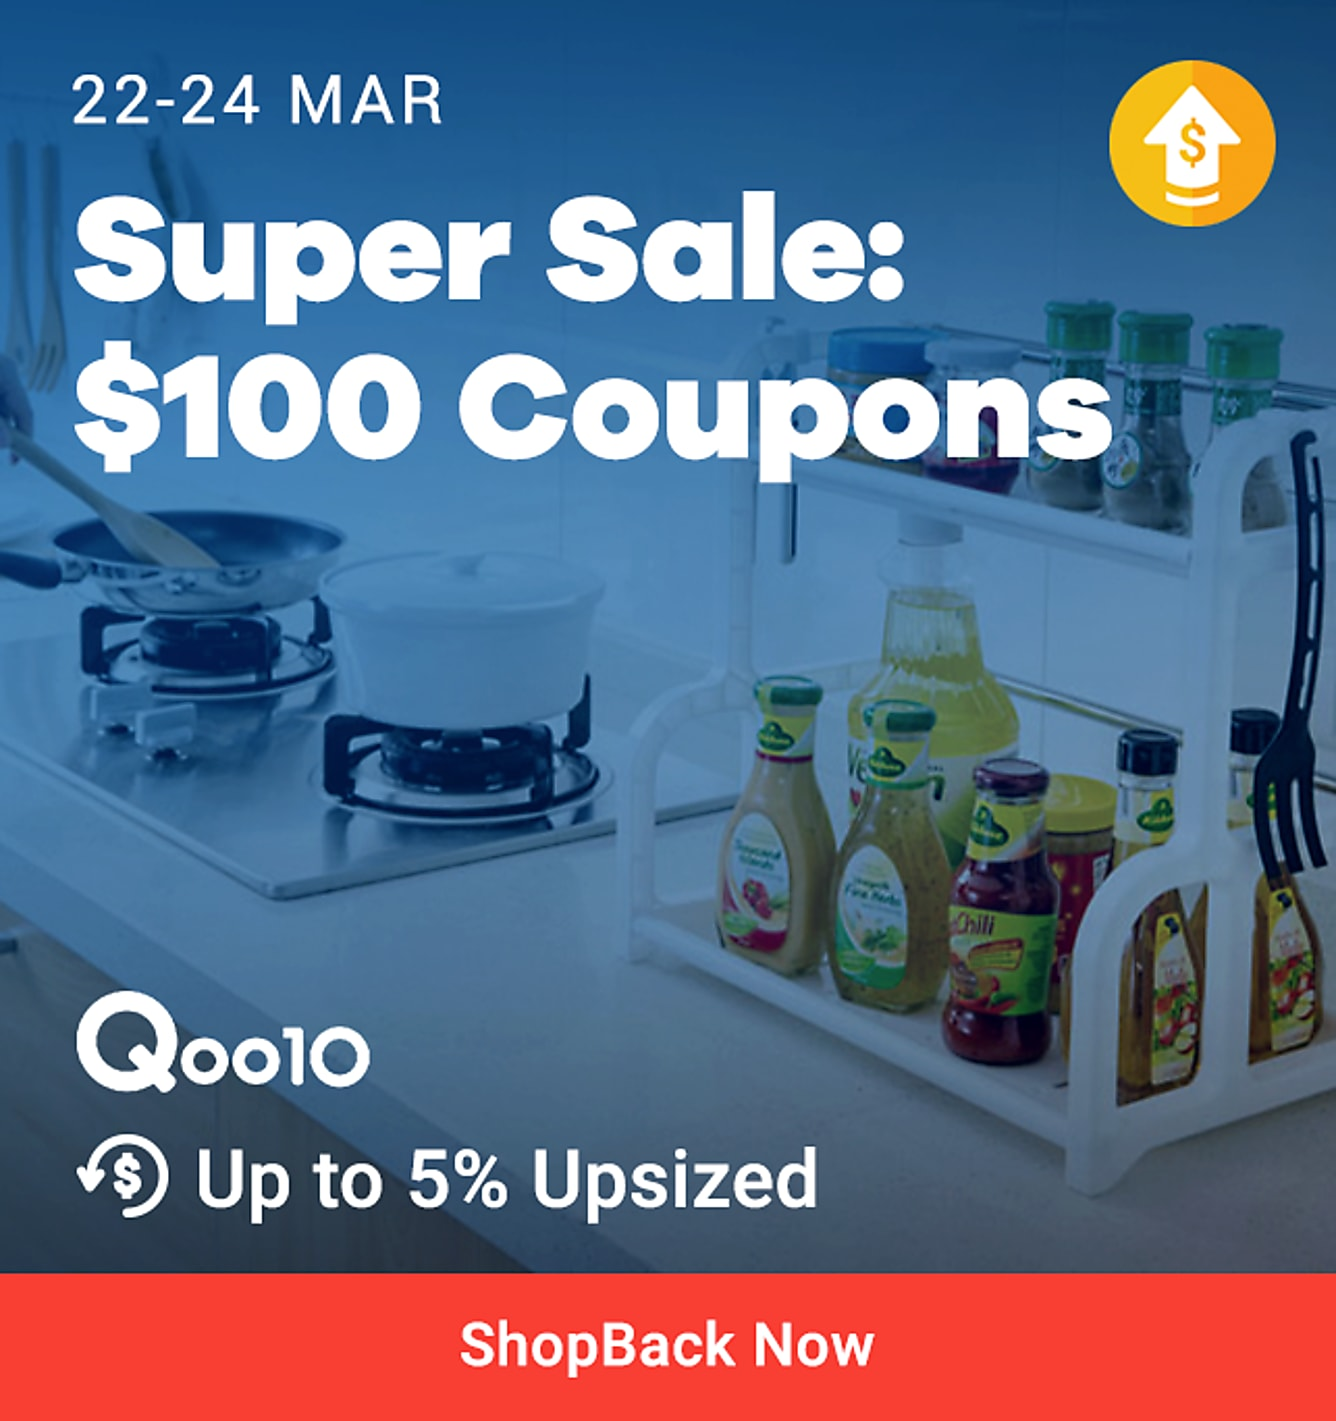 Qoo10 Super Sale 5% Upsized on Clothing 22-24 Mar